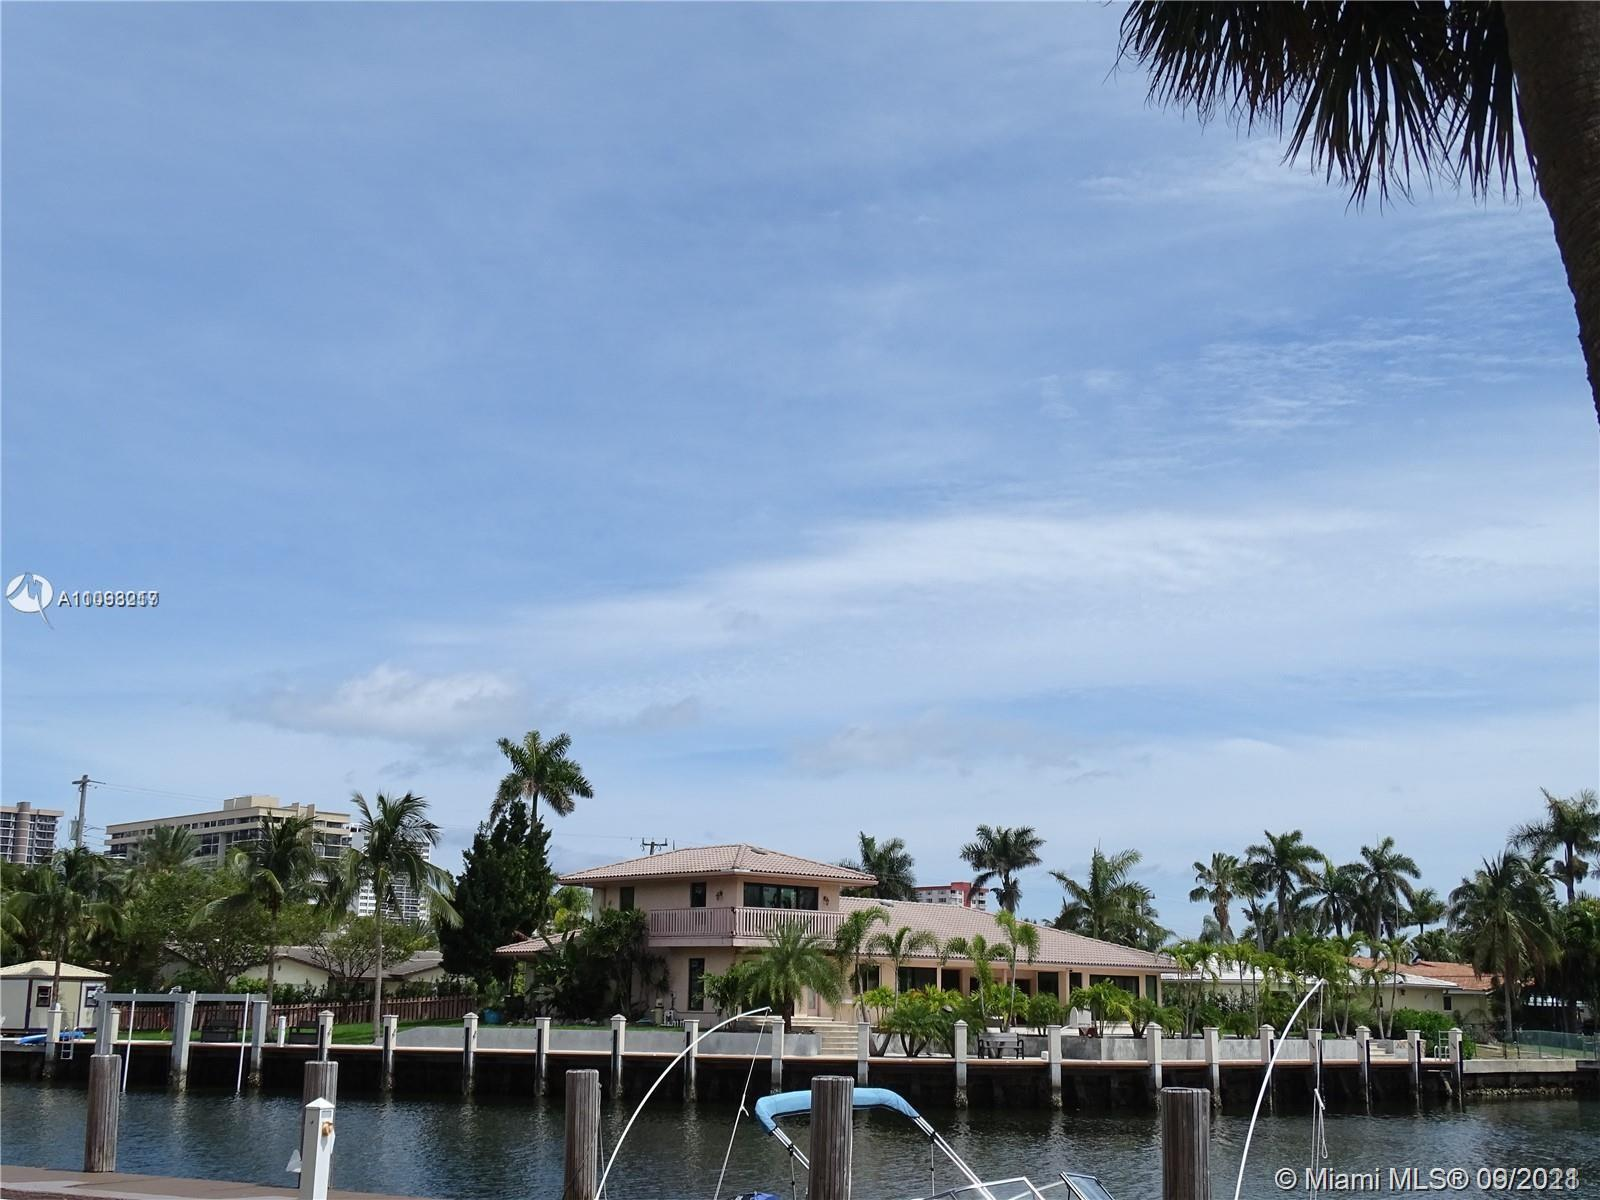 COZY PLACE! COMPLETELY UPDATED CONDO, SPACIOUS, WATERFRONT, 2 BEDROOM, 2 BATH, GRANITE & STAINLESS K